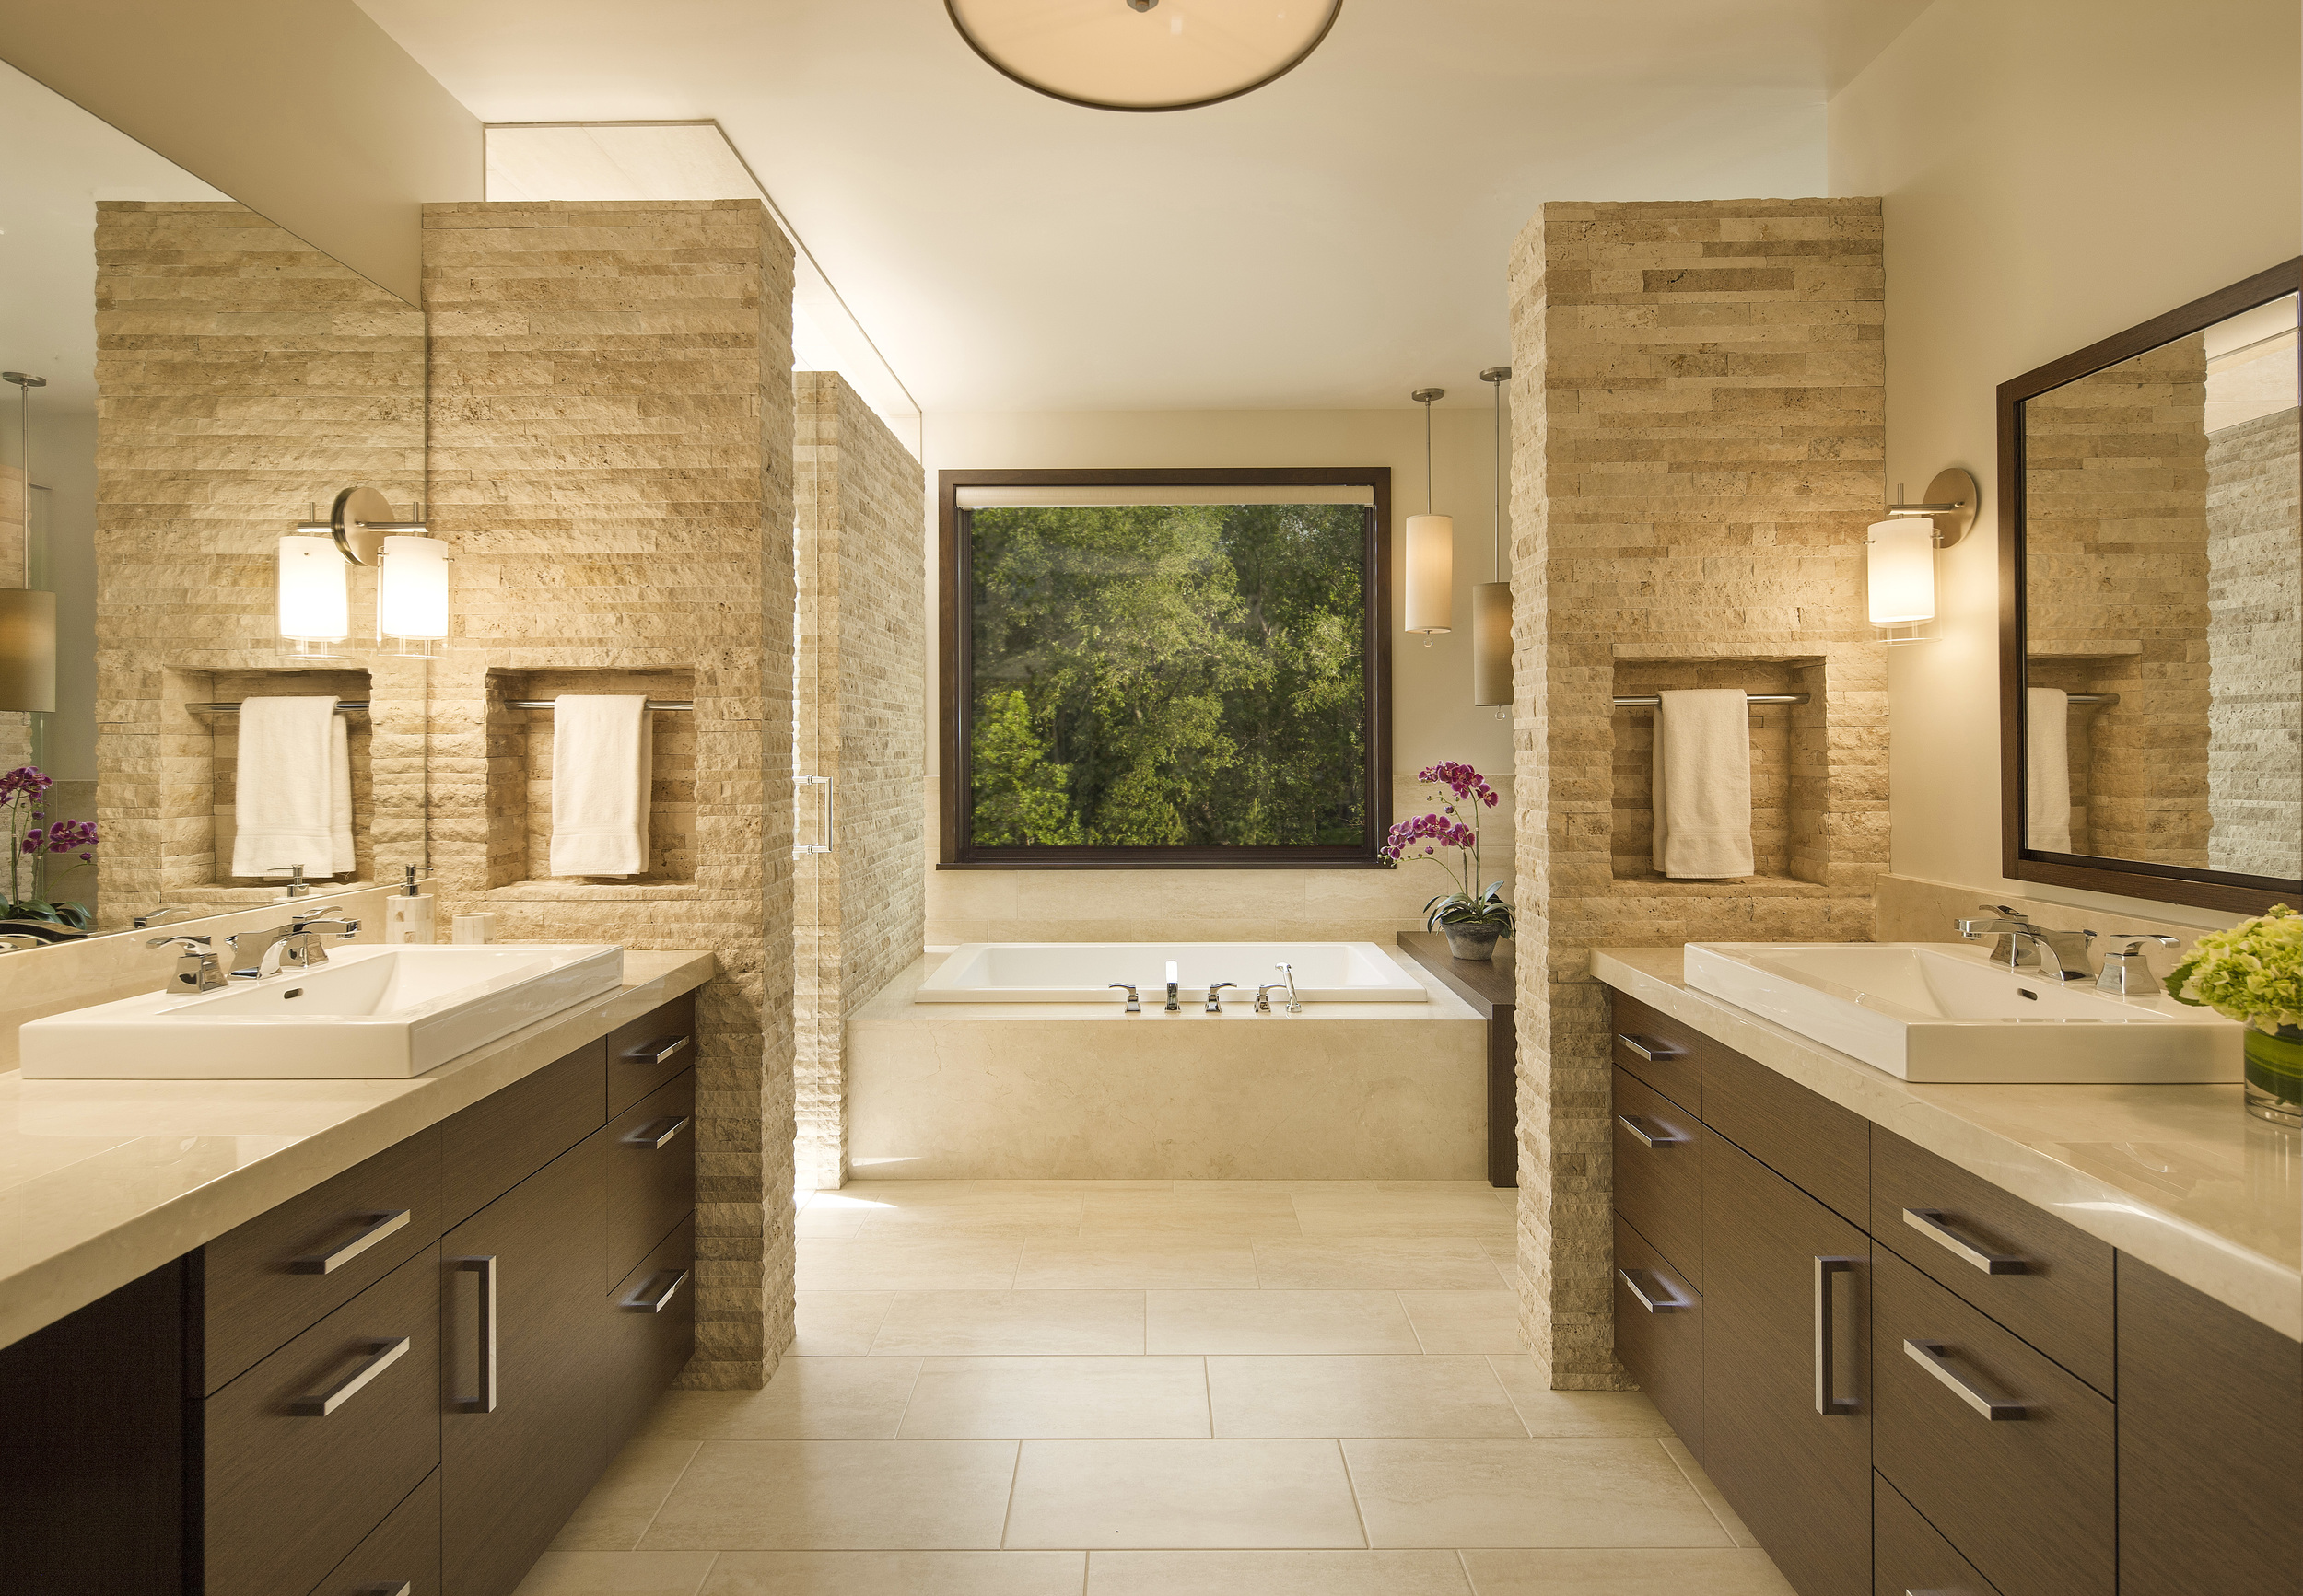 interior-bathroom-charming-cream-ceiling-wall-light-design-inspiration-with-beautiful-two-single-sink-plus-beautiful-dark-brown-wood-bathroom-cabinet-a.jpg